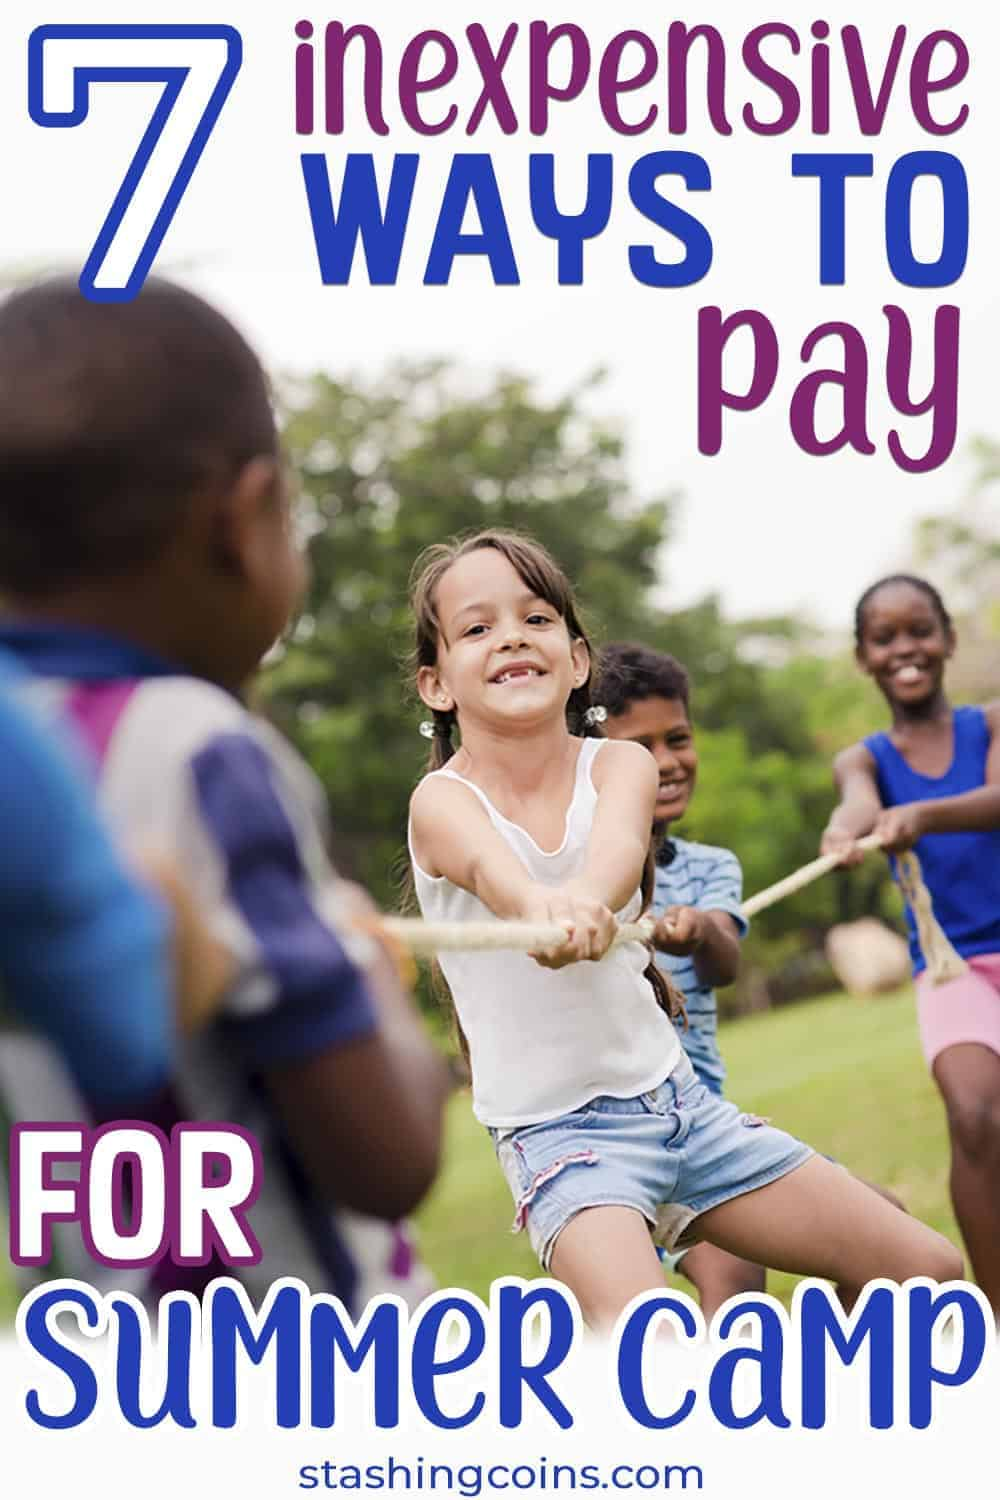 Inexpensive ways to afford summer camp